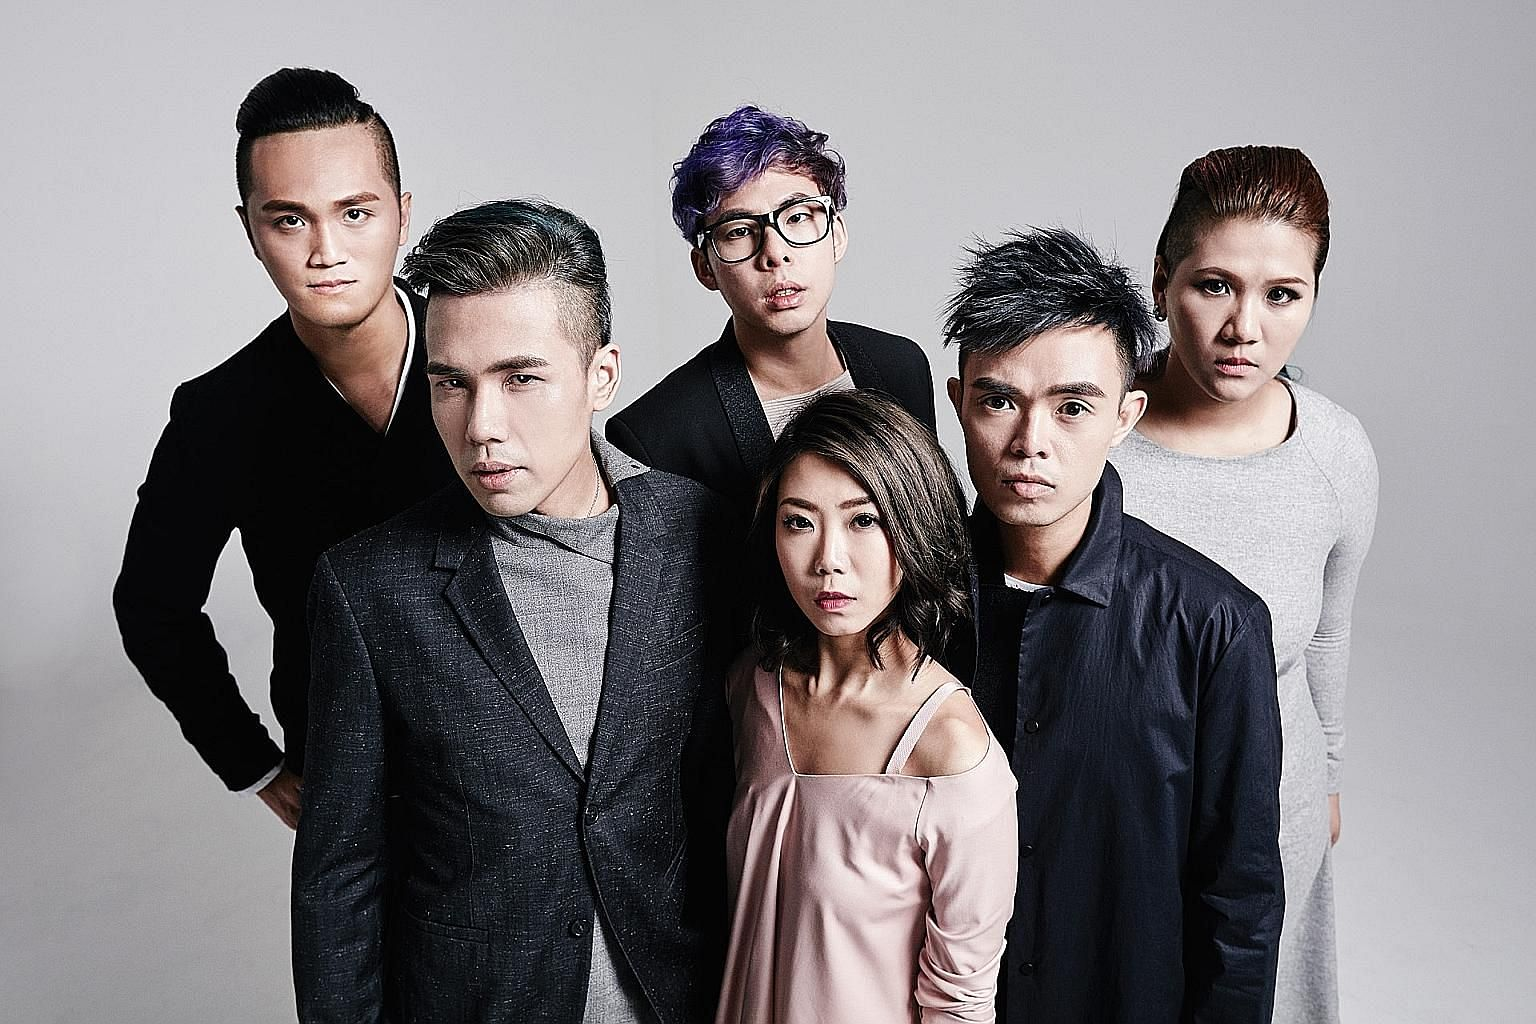 Singaporean singer-songwriter Jasmine Sokko's 1057 topped Spotify's local Top 50 Viral chart late last year. Local band MICappella, comprising (from left) Peter Huang, Eugene Yip, Goh Mingwei, Tay Kexin, Juni Goh and Calin Wong, sold out all tickets